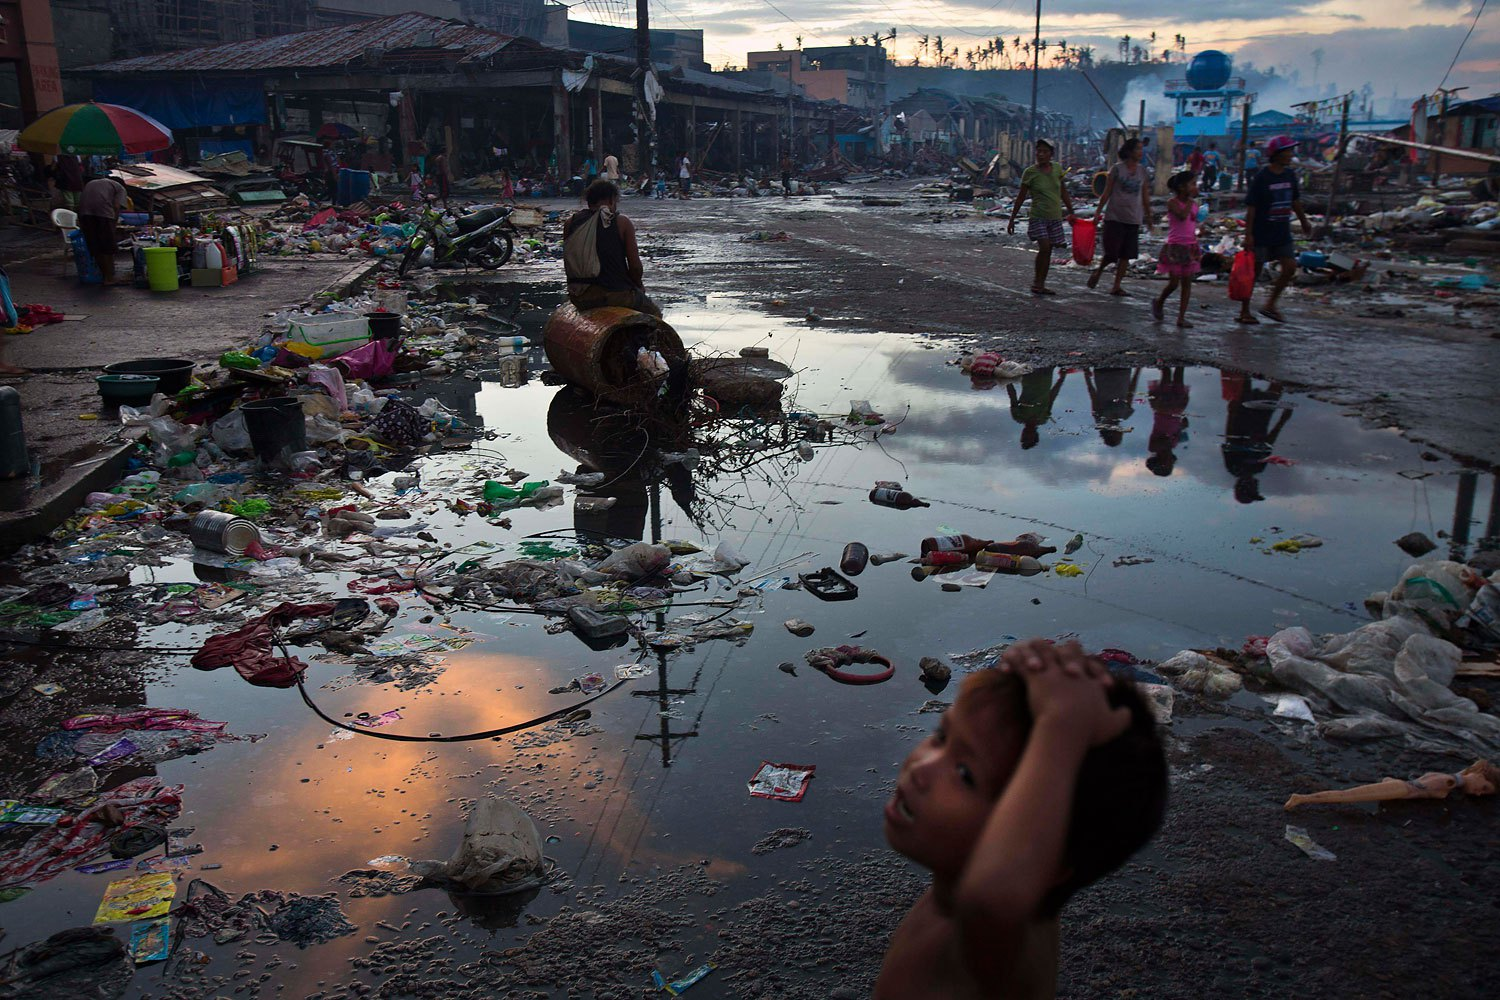 Typhoon Haiyan survivors walk through the ruins in the streets of Tacloban, Philippines, November 17, 2013.